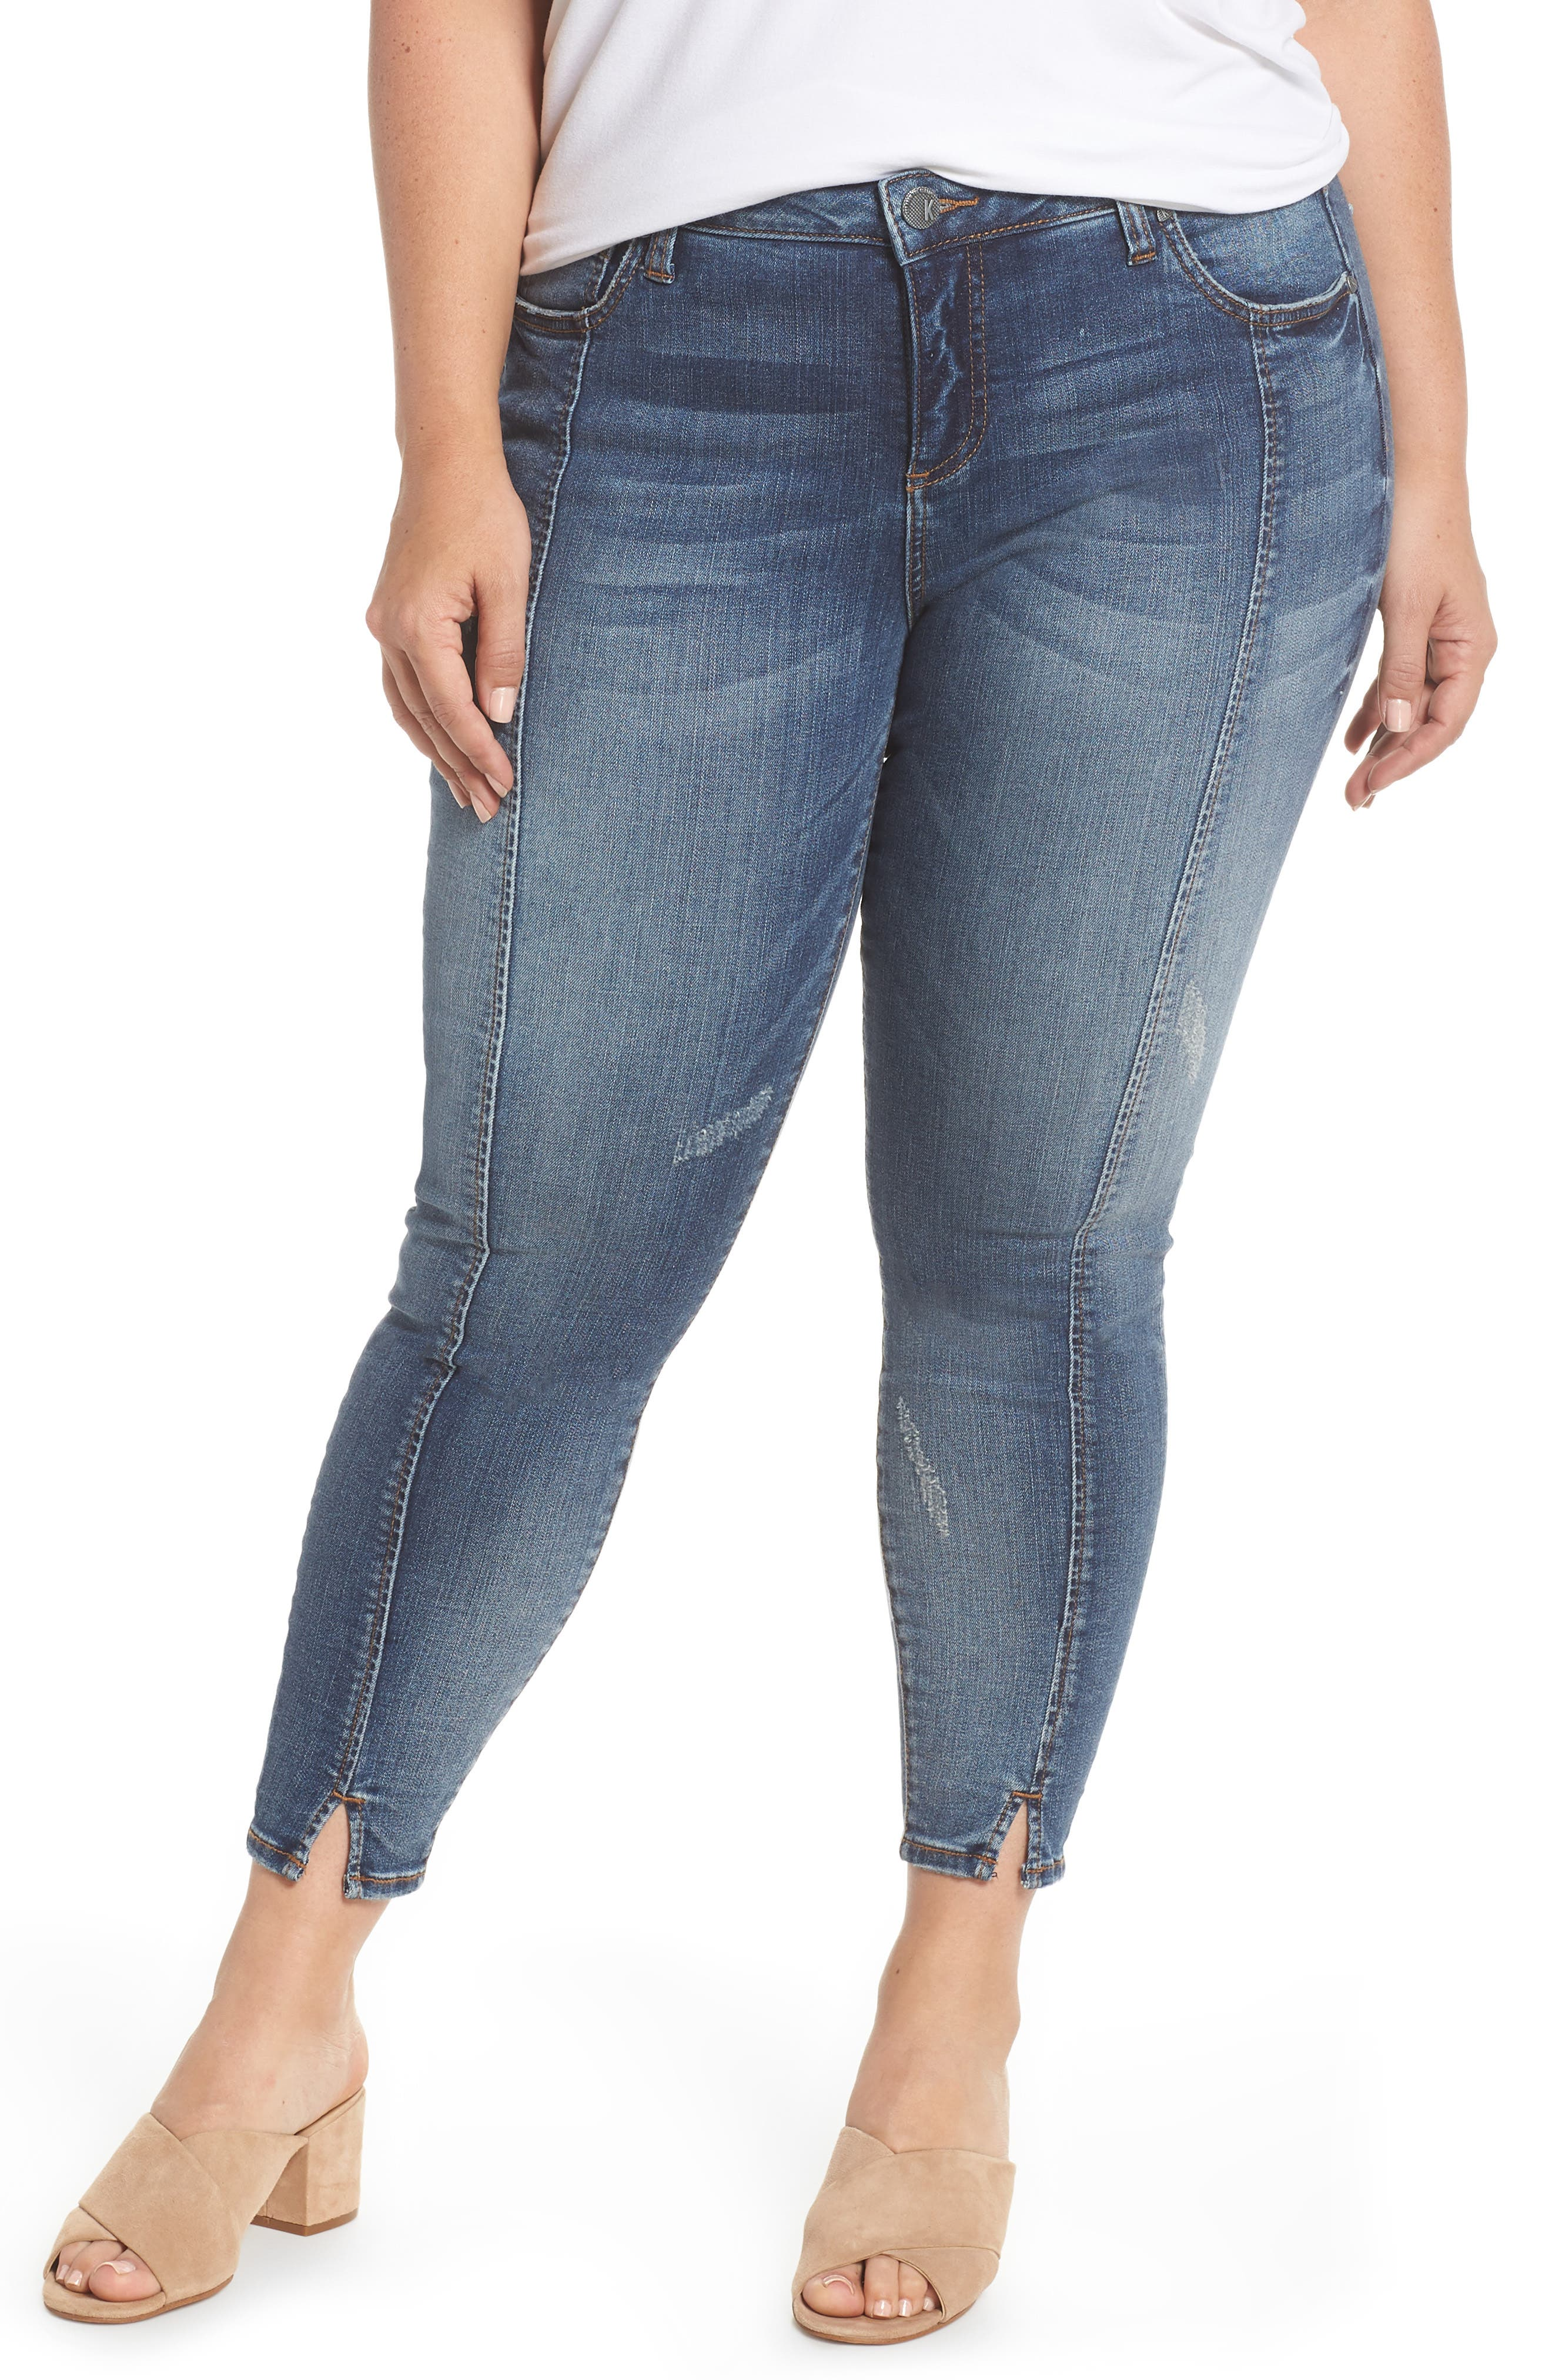 Reese Seam Ankle Skinny Jeans,                         Main,                         color, Poetic